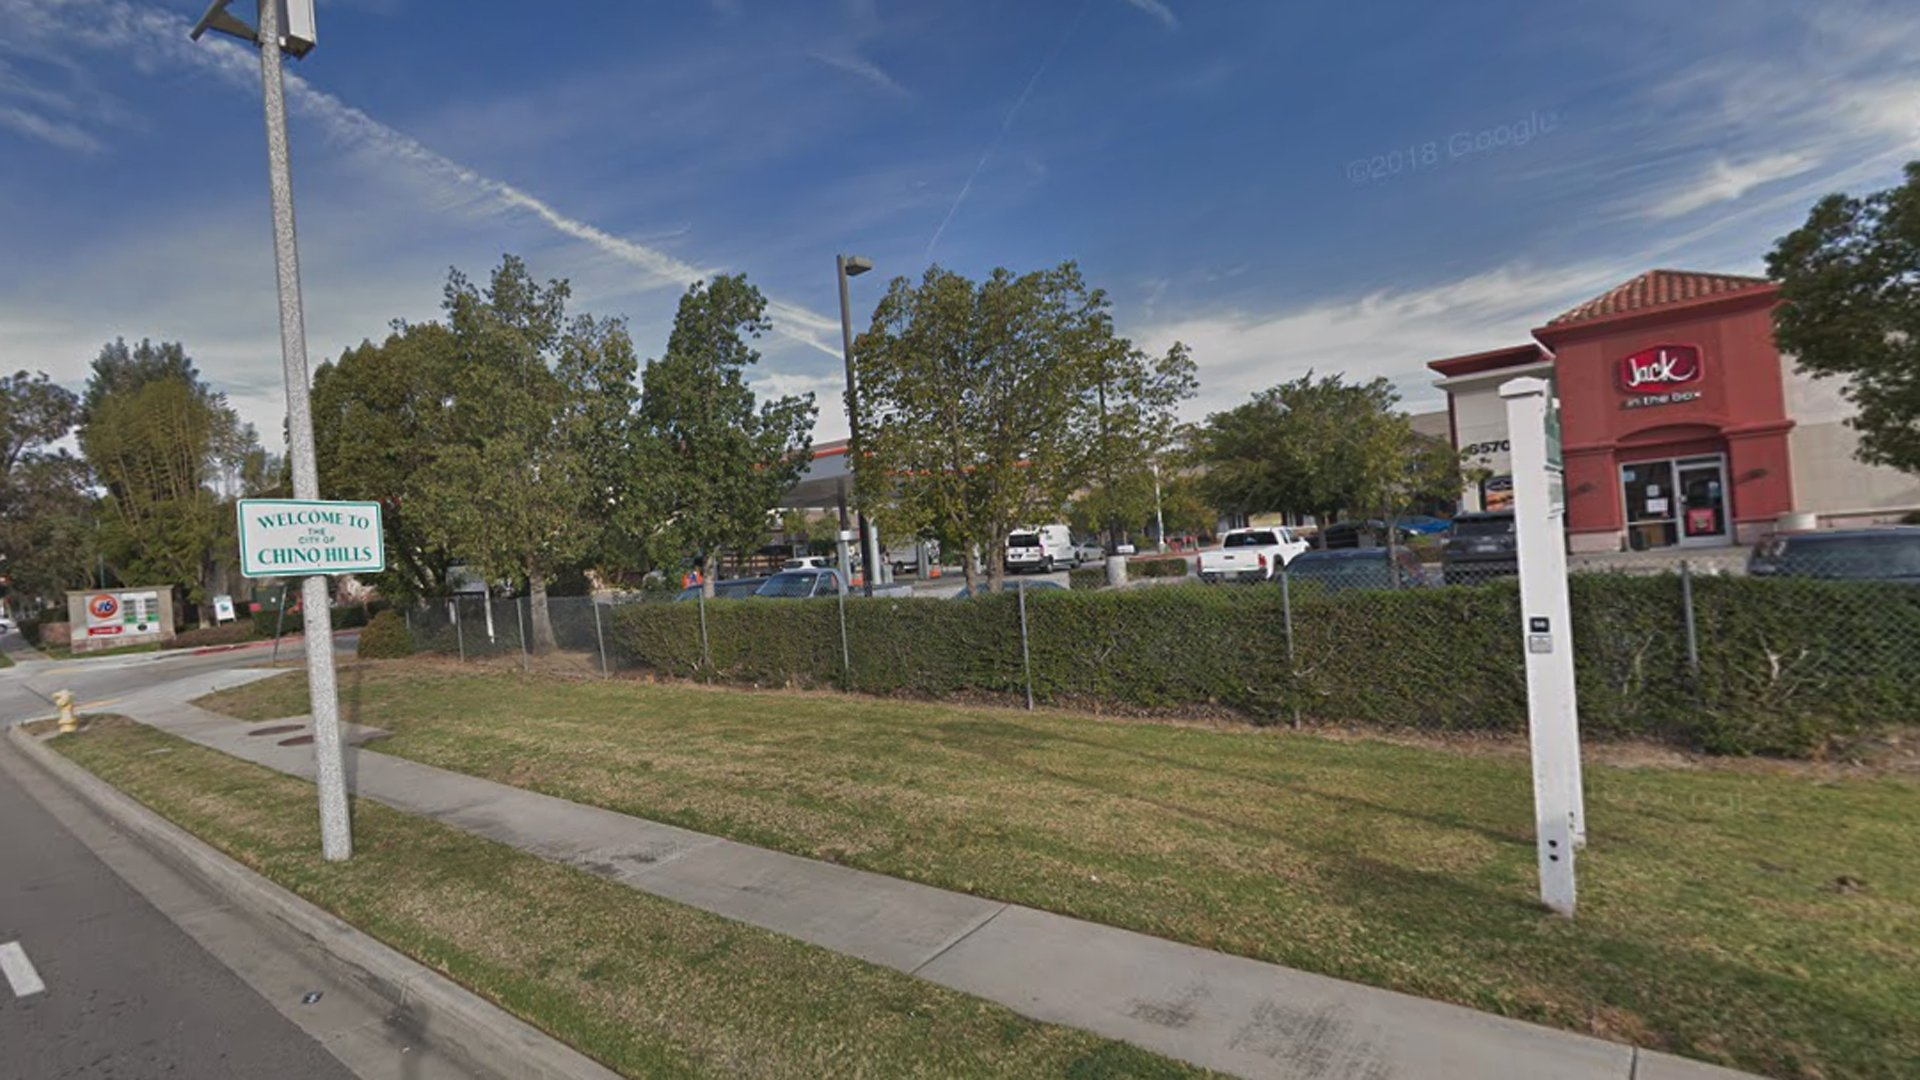 A commercial parking lot along the 6500 block of Butterfield Ranch Road in Chino Hills, as pictured in a Google Street View image.